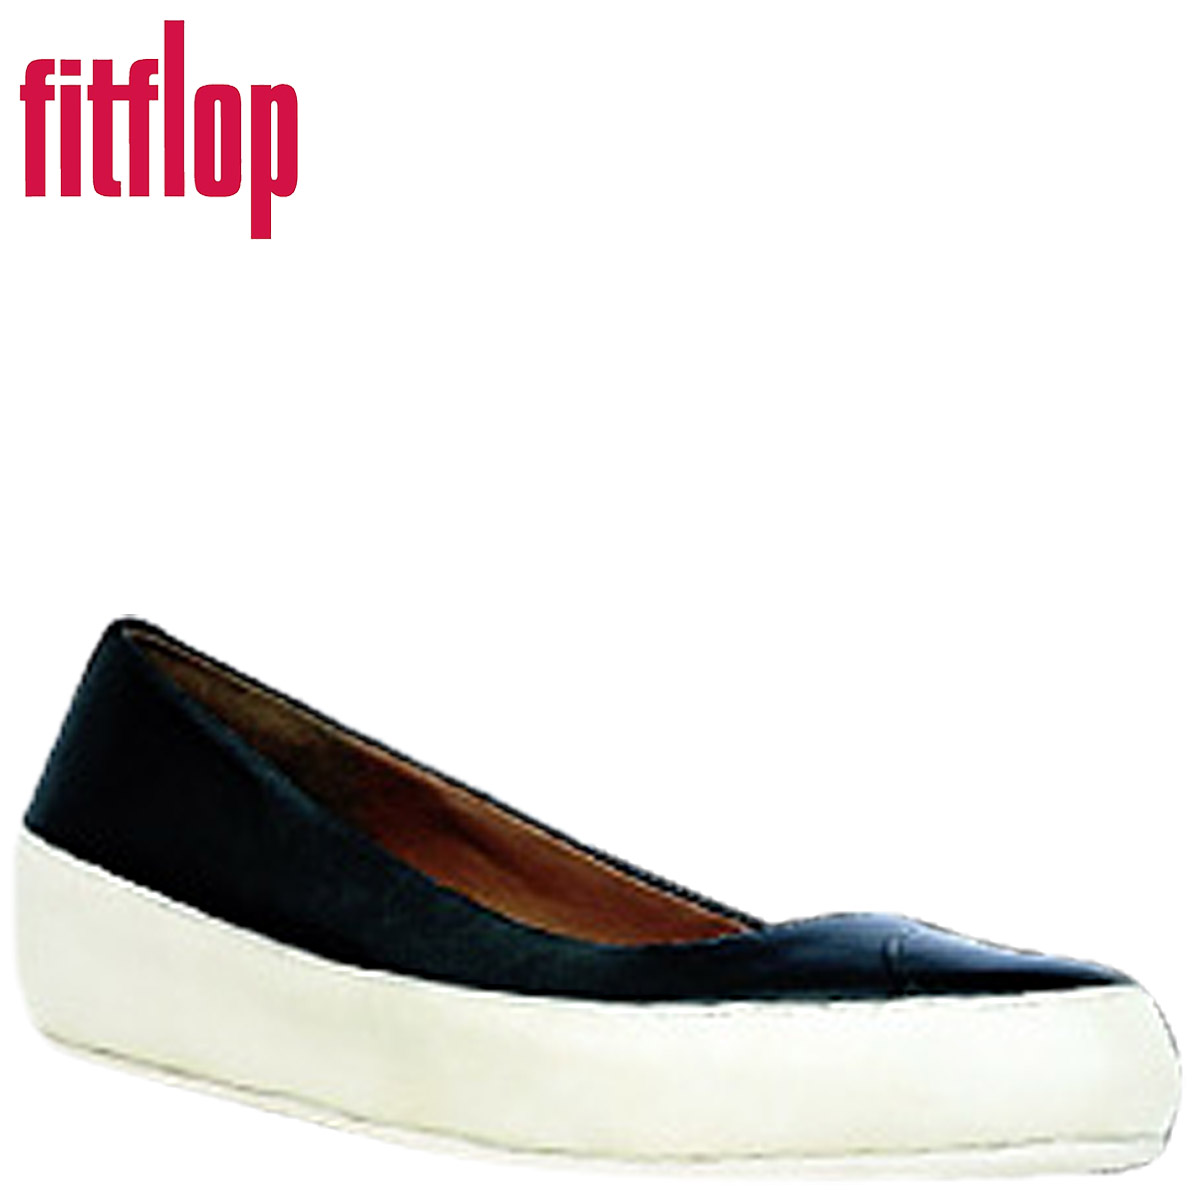 Flop Pumps Online Sneak Fitting Leather Douai Due ShopFitflop mNw8nOv0